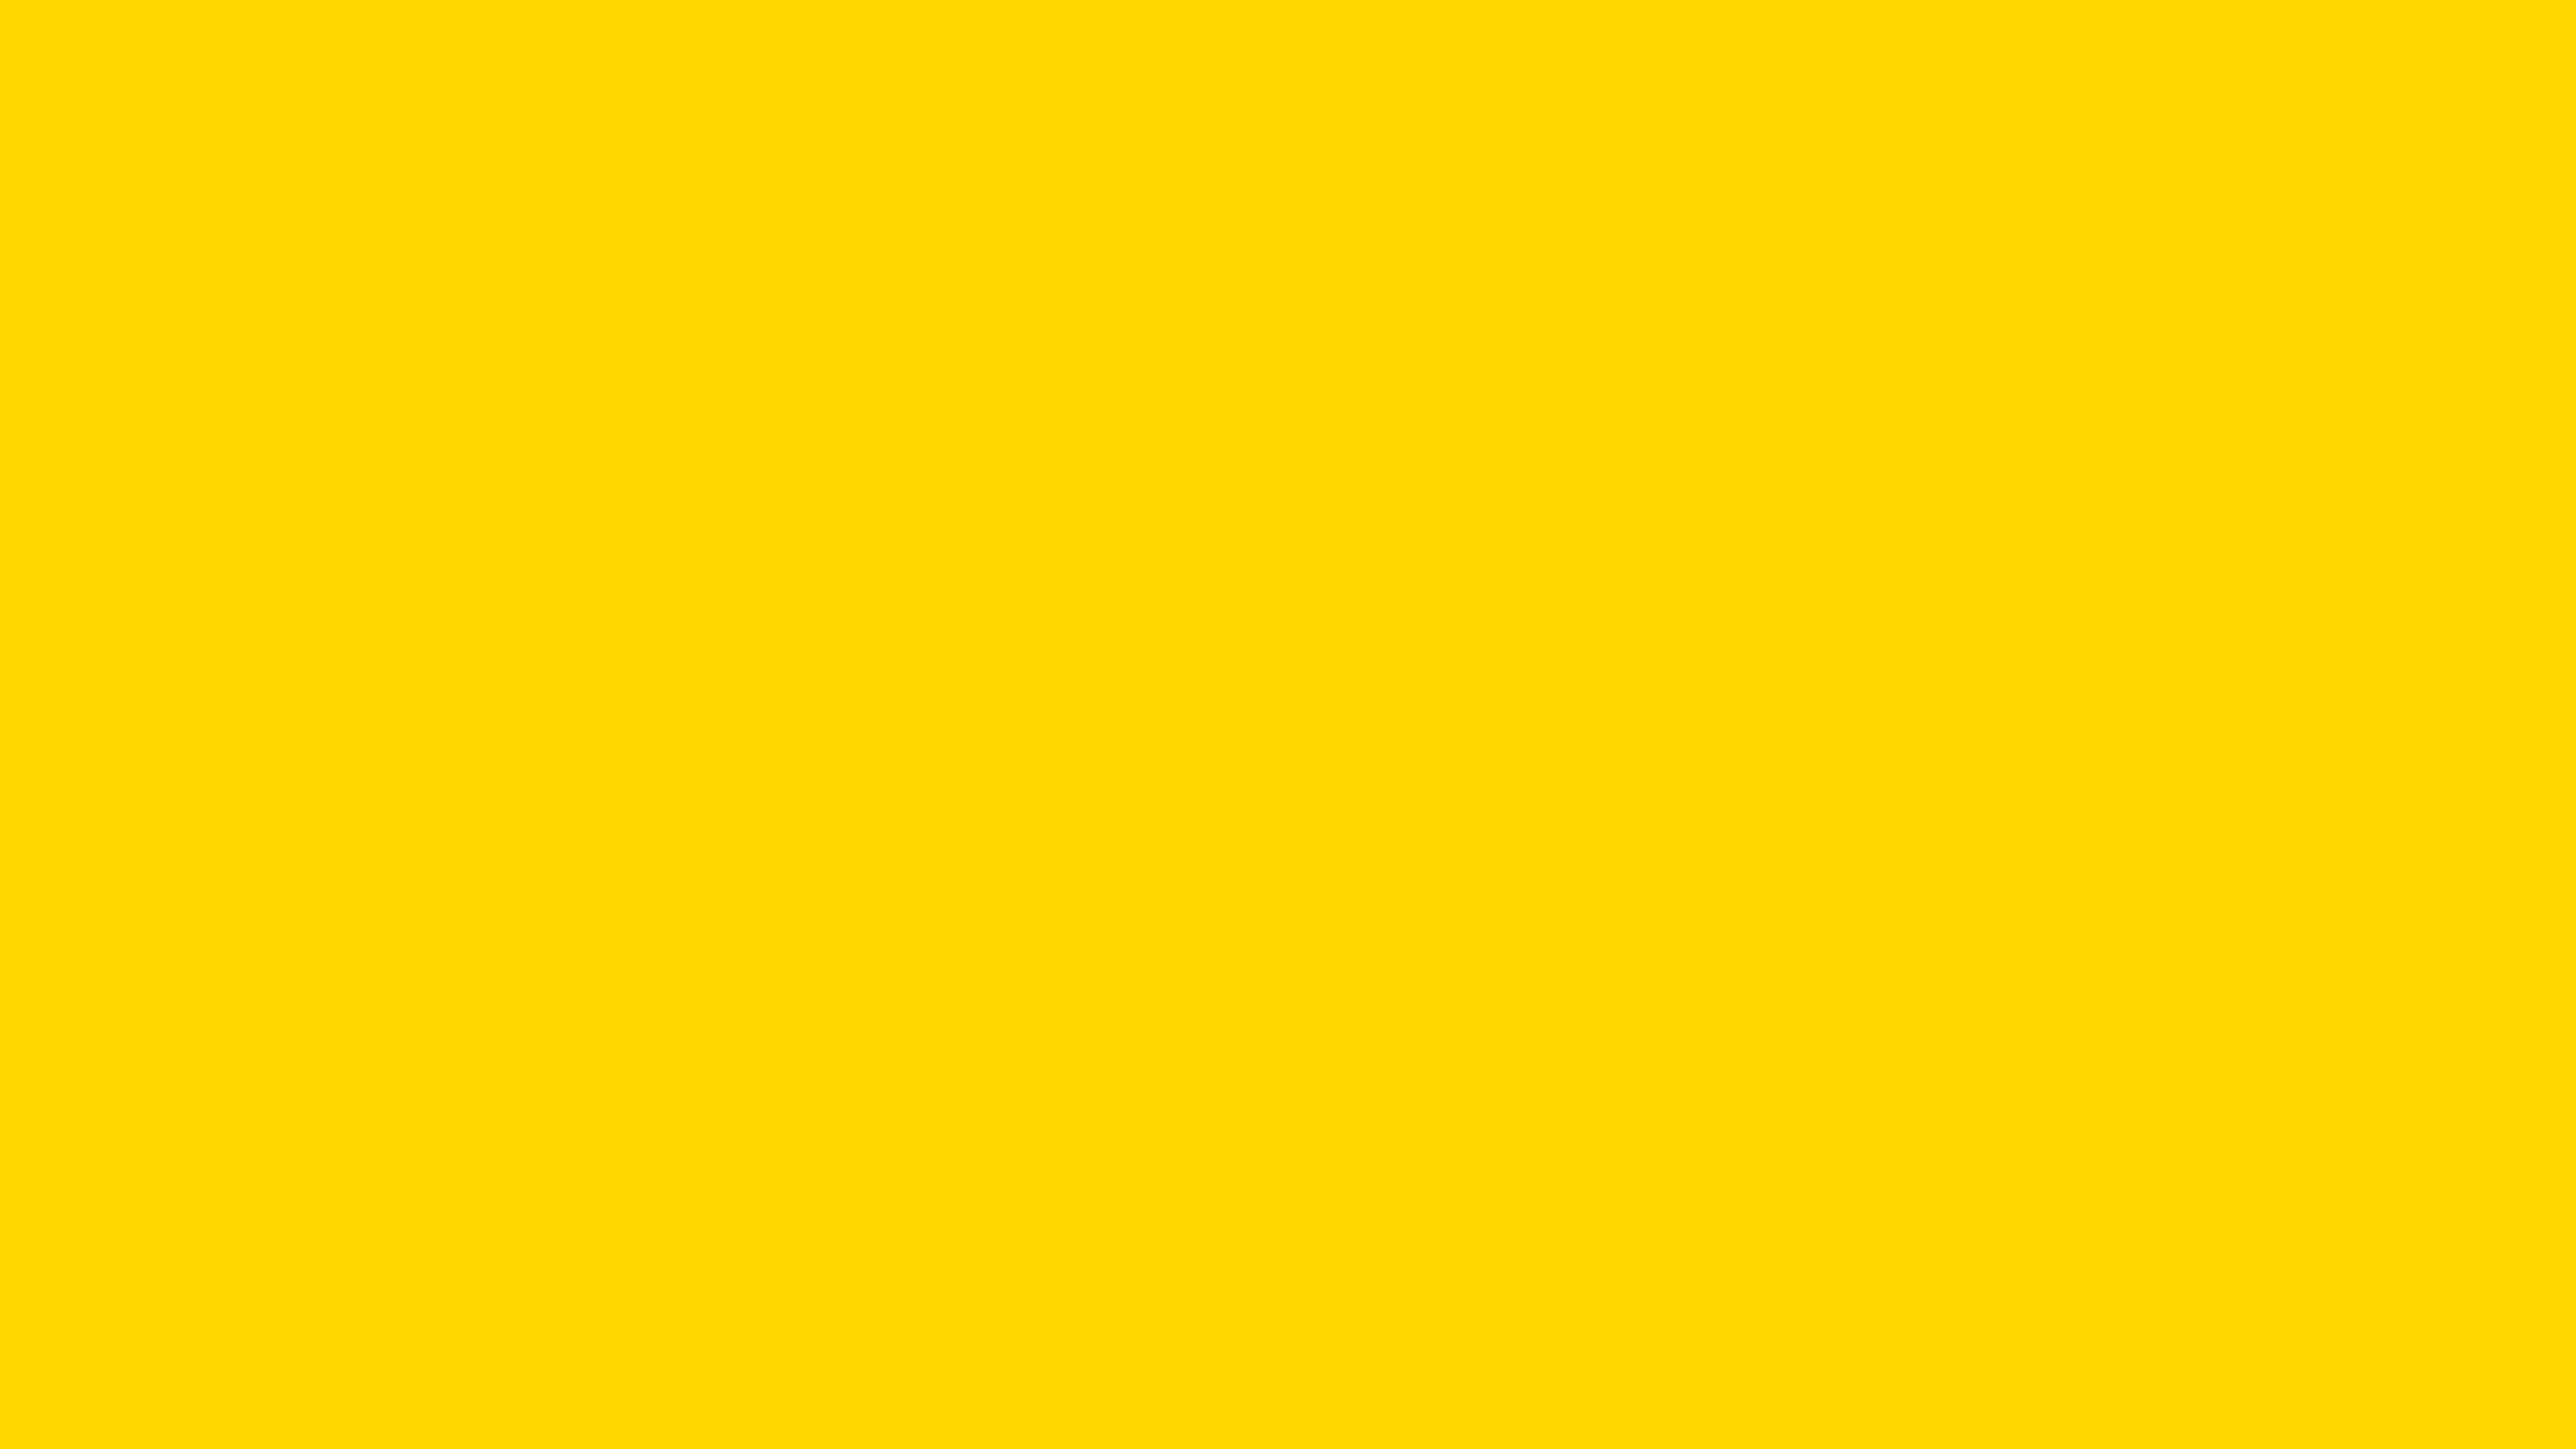 4096x2304 School Bus Yellow Solid Color Background